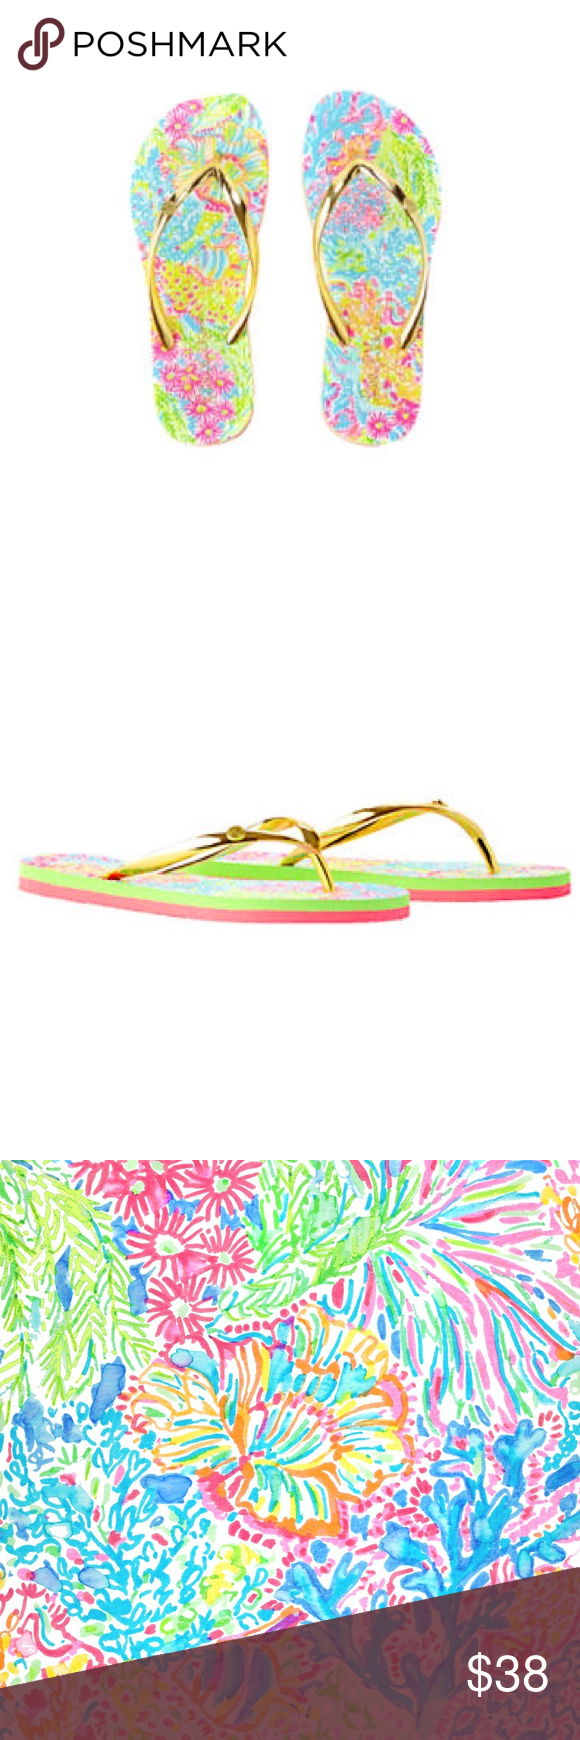 0191bf528 Lilly Pulitzer NWT Pool Flip Flop is Lovers Coral NWT Lilly Pulitzer Pool  Flip Flop is Lovers Coral. Never worn